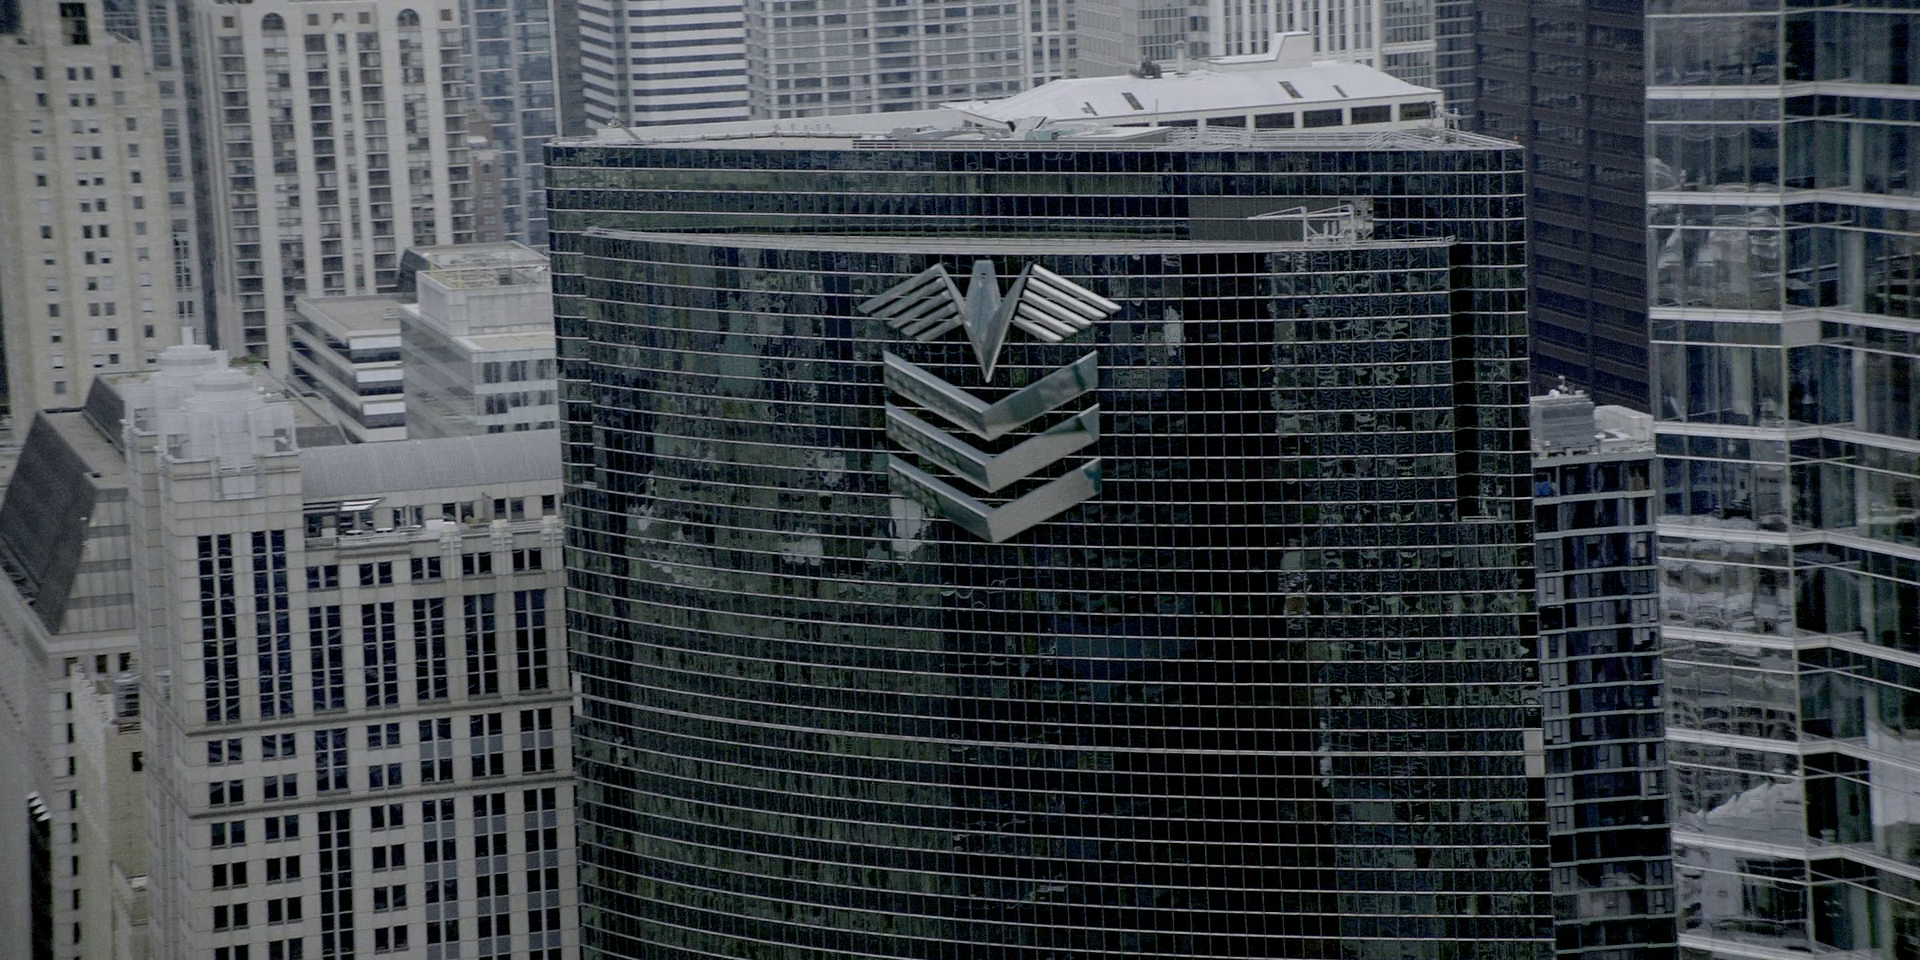 Crows Security (Arrowverse)/Gallery